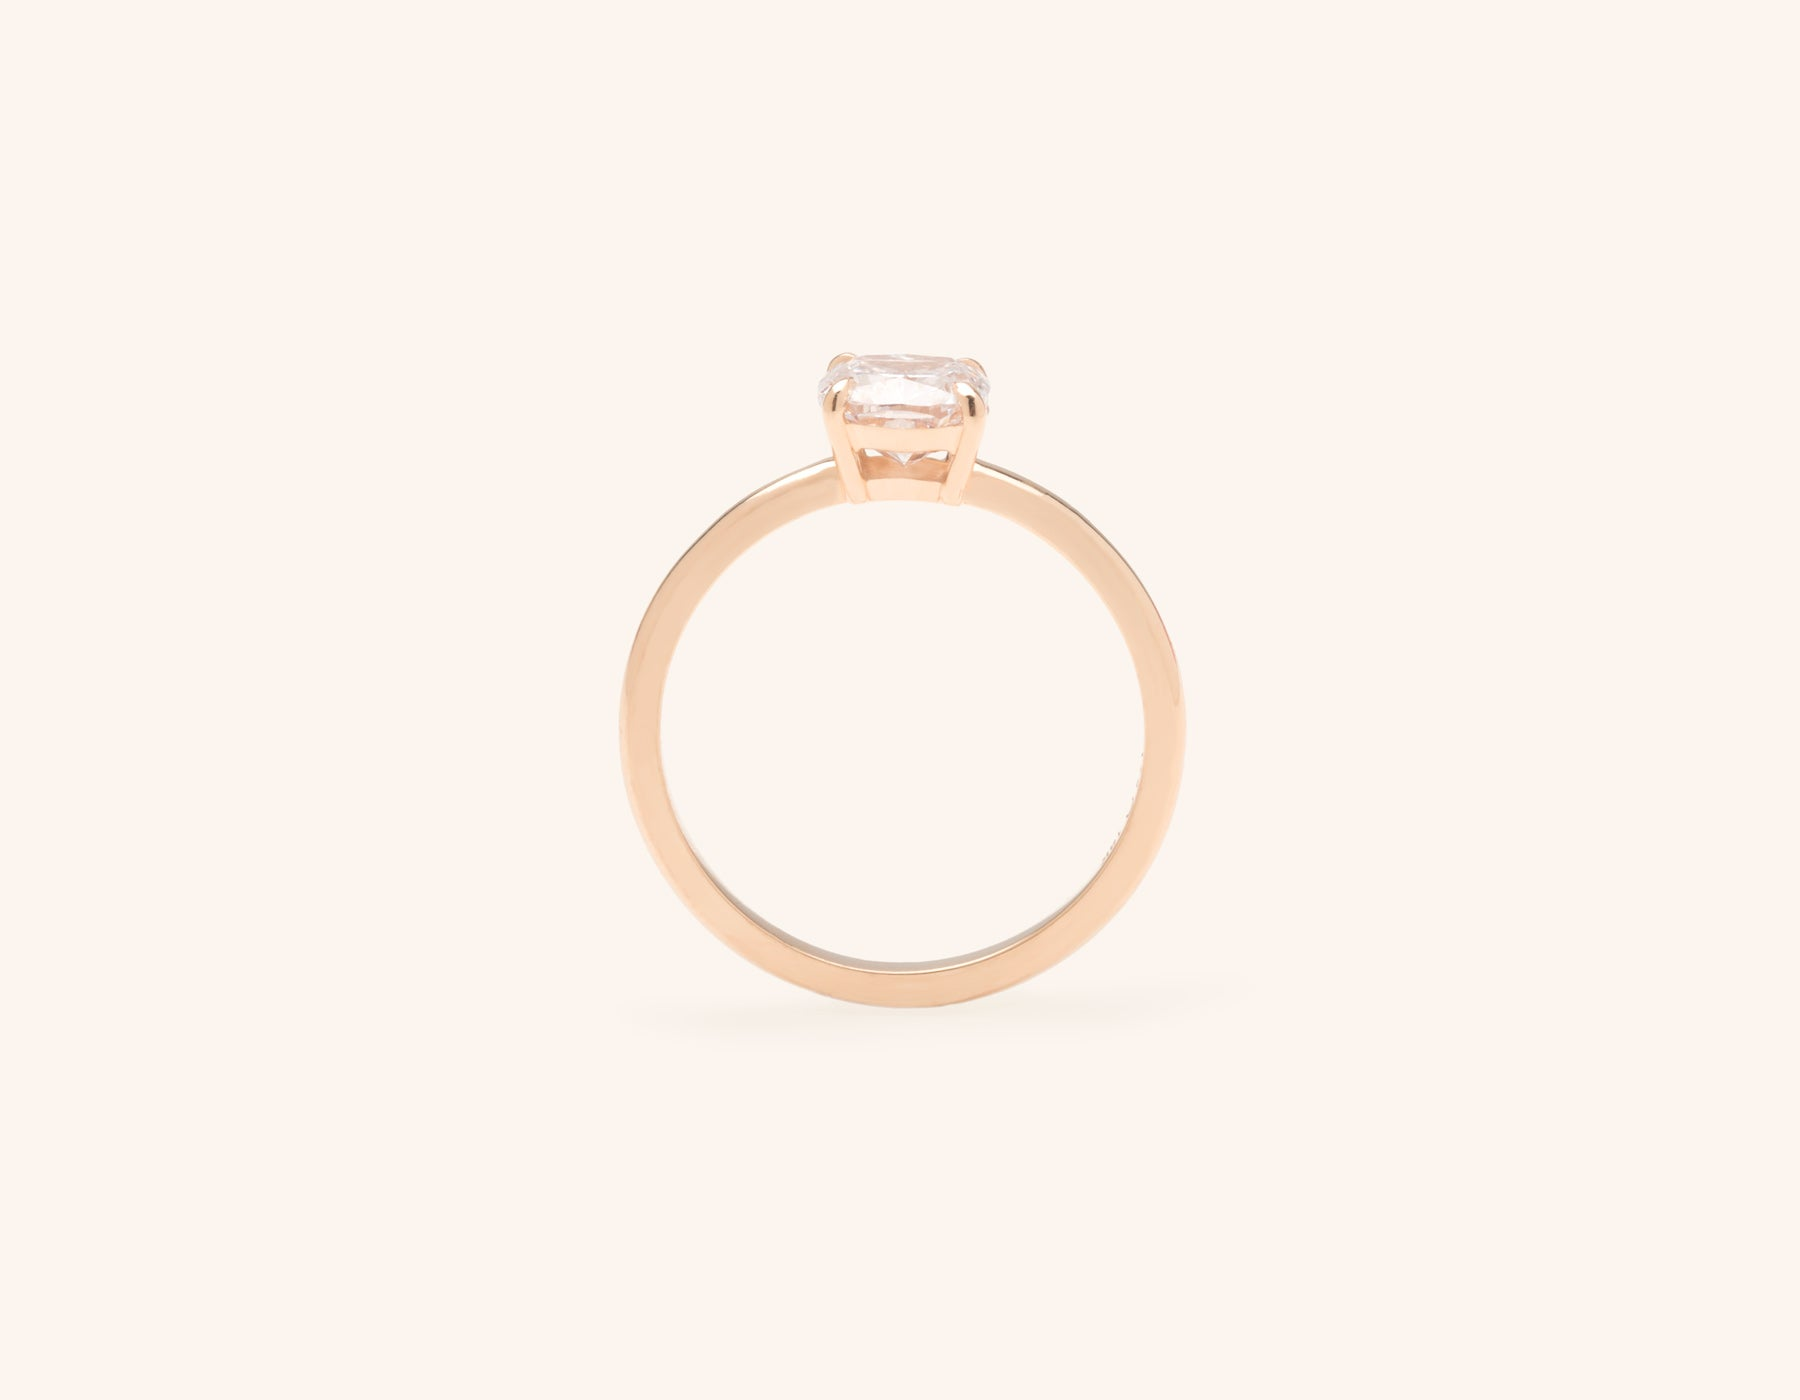 Vrai and Oro modern classic The Cushion diamond engagement ring 18k solid rose gold sustainable jewelry